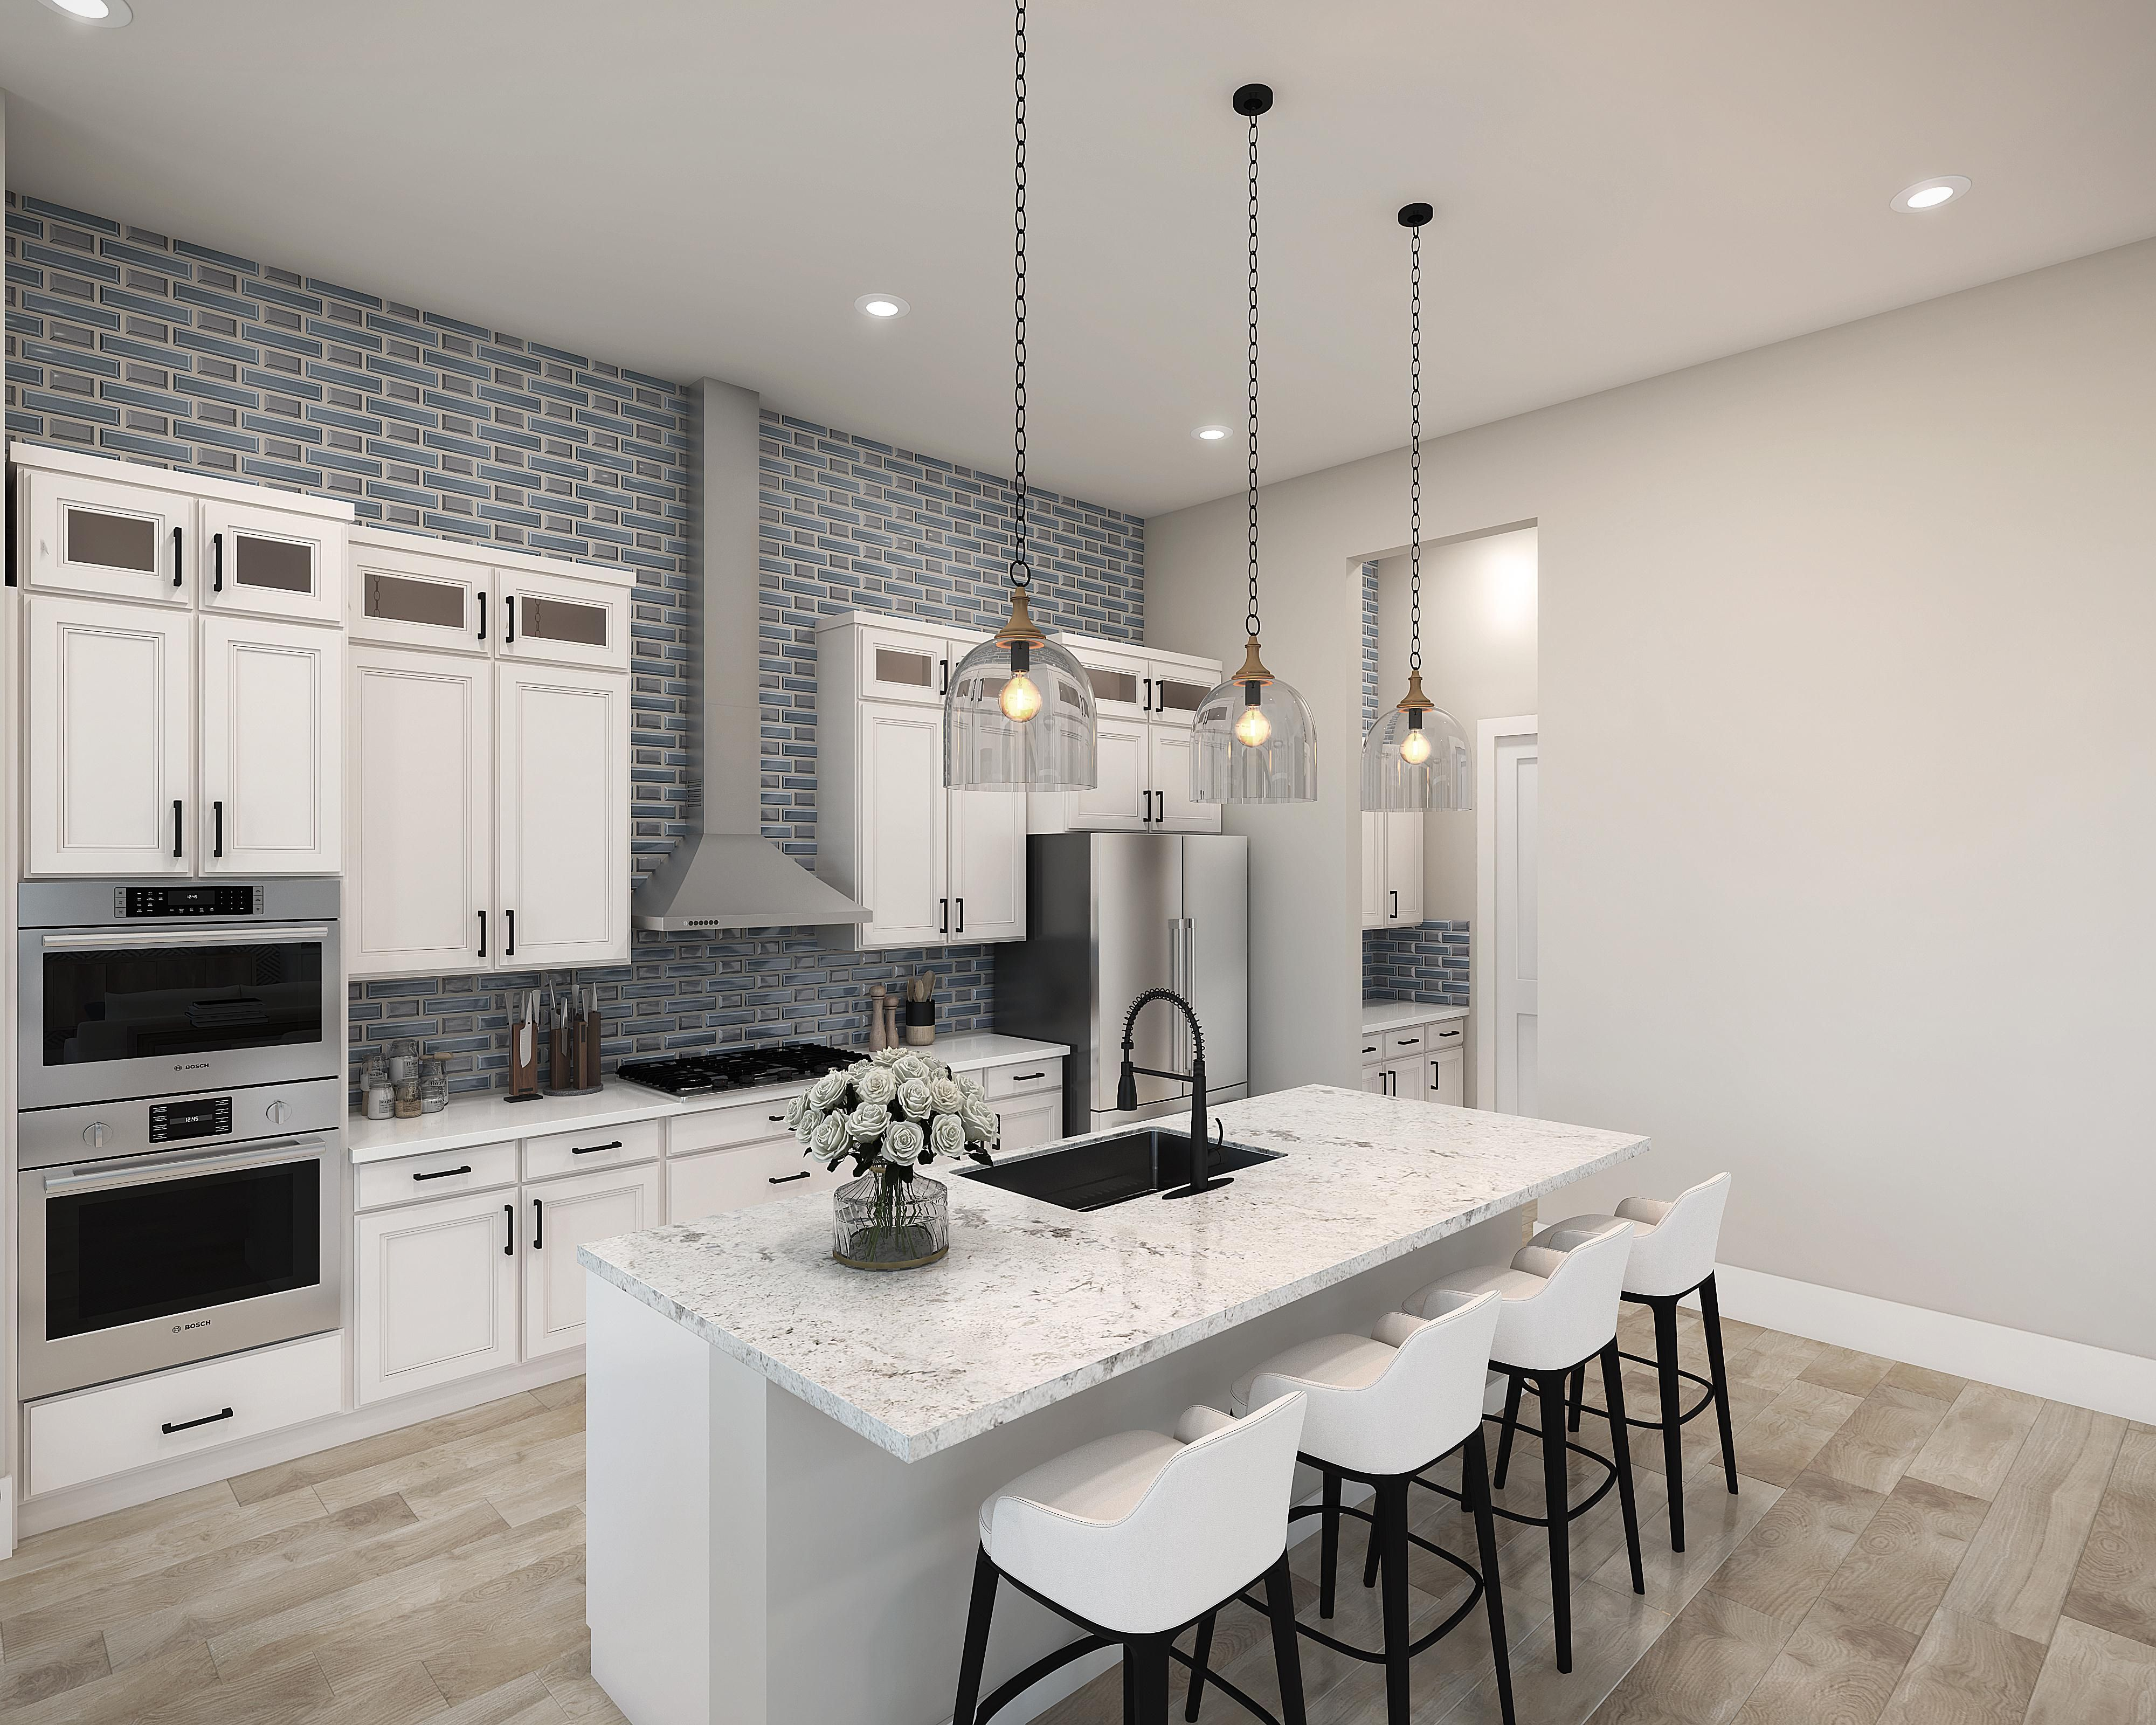 Kitchen featured in the Plan 1-B By Copper Valley  in Stockton-Lodi, CA